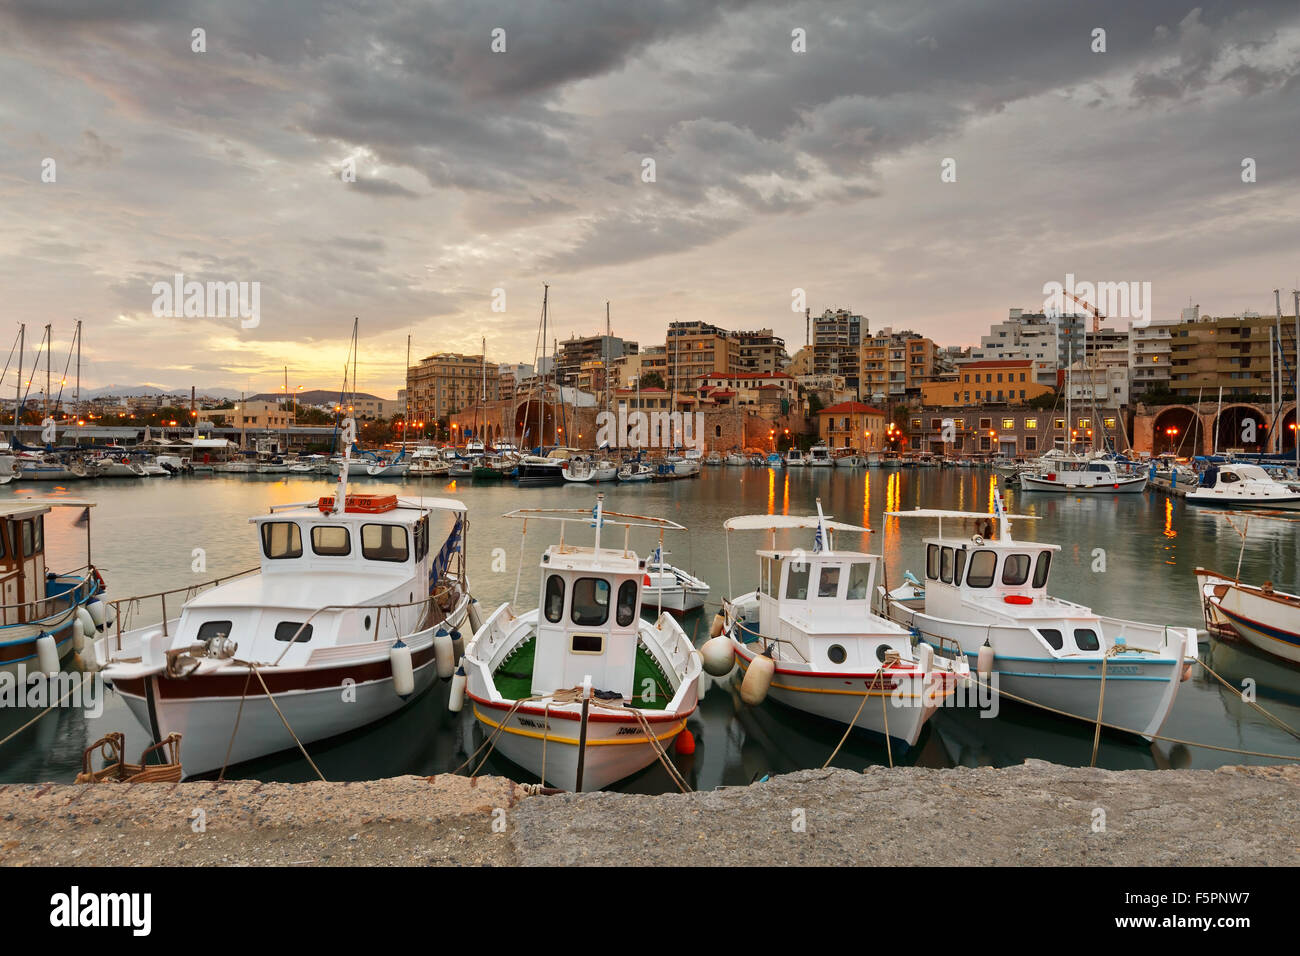 Old harbour with fishing boats and marina in Heraklion, Crete, Greece - Stock Image